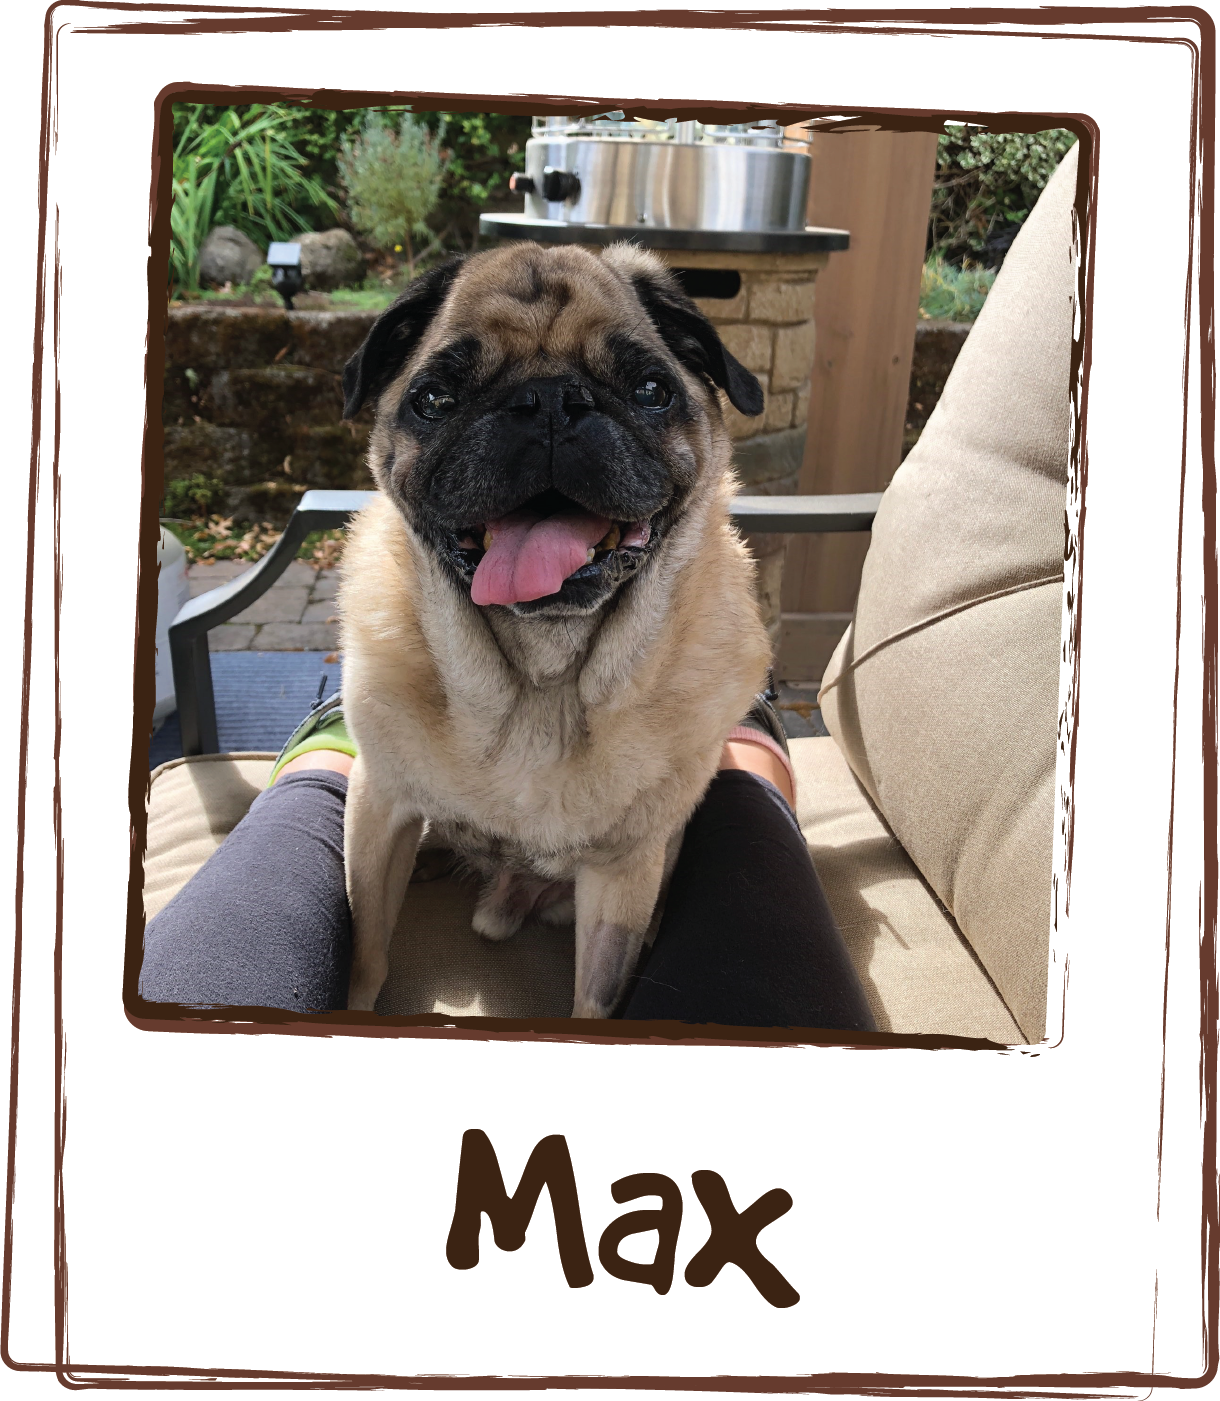 """""""Hi again! So when Mr. Max was younger I found out that he was allergic to over the counter food. I started making his food (brown rice and chicken) and after much searching found your Multi Viamin Feeding Aid. I wrote you and told you how please I was and you actually are using my Testimonial on the box! Well, Max is quite a bit older and recently it appeared that he was starting to wind down. I was heart broken watching him move with difficulty as well as learning that his heart was skipping beats and feared we may not have him for much longer. I started using the Joint + heart formula and within two weeks even my dog walker was telling me what did I do! Max is like a puppy again! Loving life and running around playing with his 11 month old Italian Mastiff Sister, who by the way also gets the Multi viamin feeding aid. I havent had his heart retested but I am sure it is helping with that as well. Once again, Thank you so much for providing these formulas.!! I have my little guy back happy and healthy!!"""""""